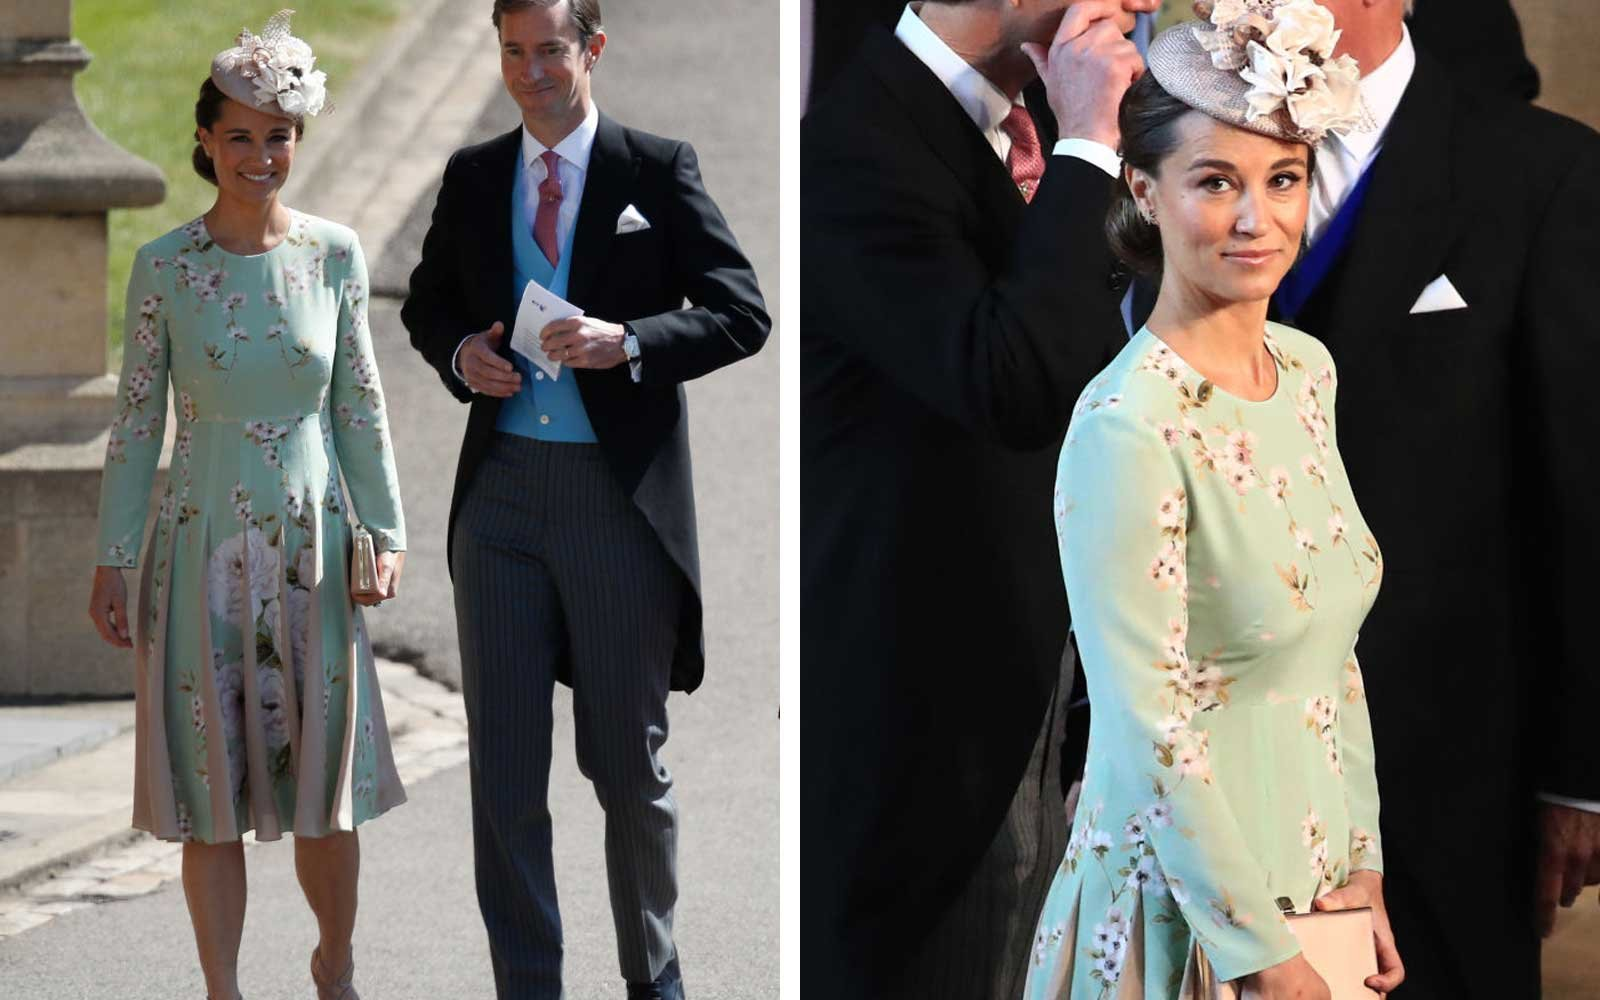 Pippa Middleton at the Royal Wedding